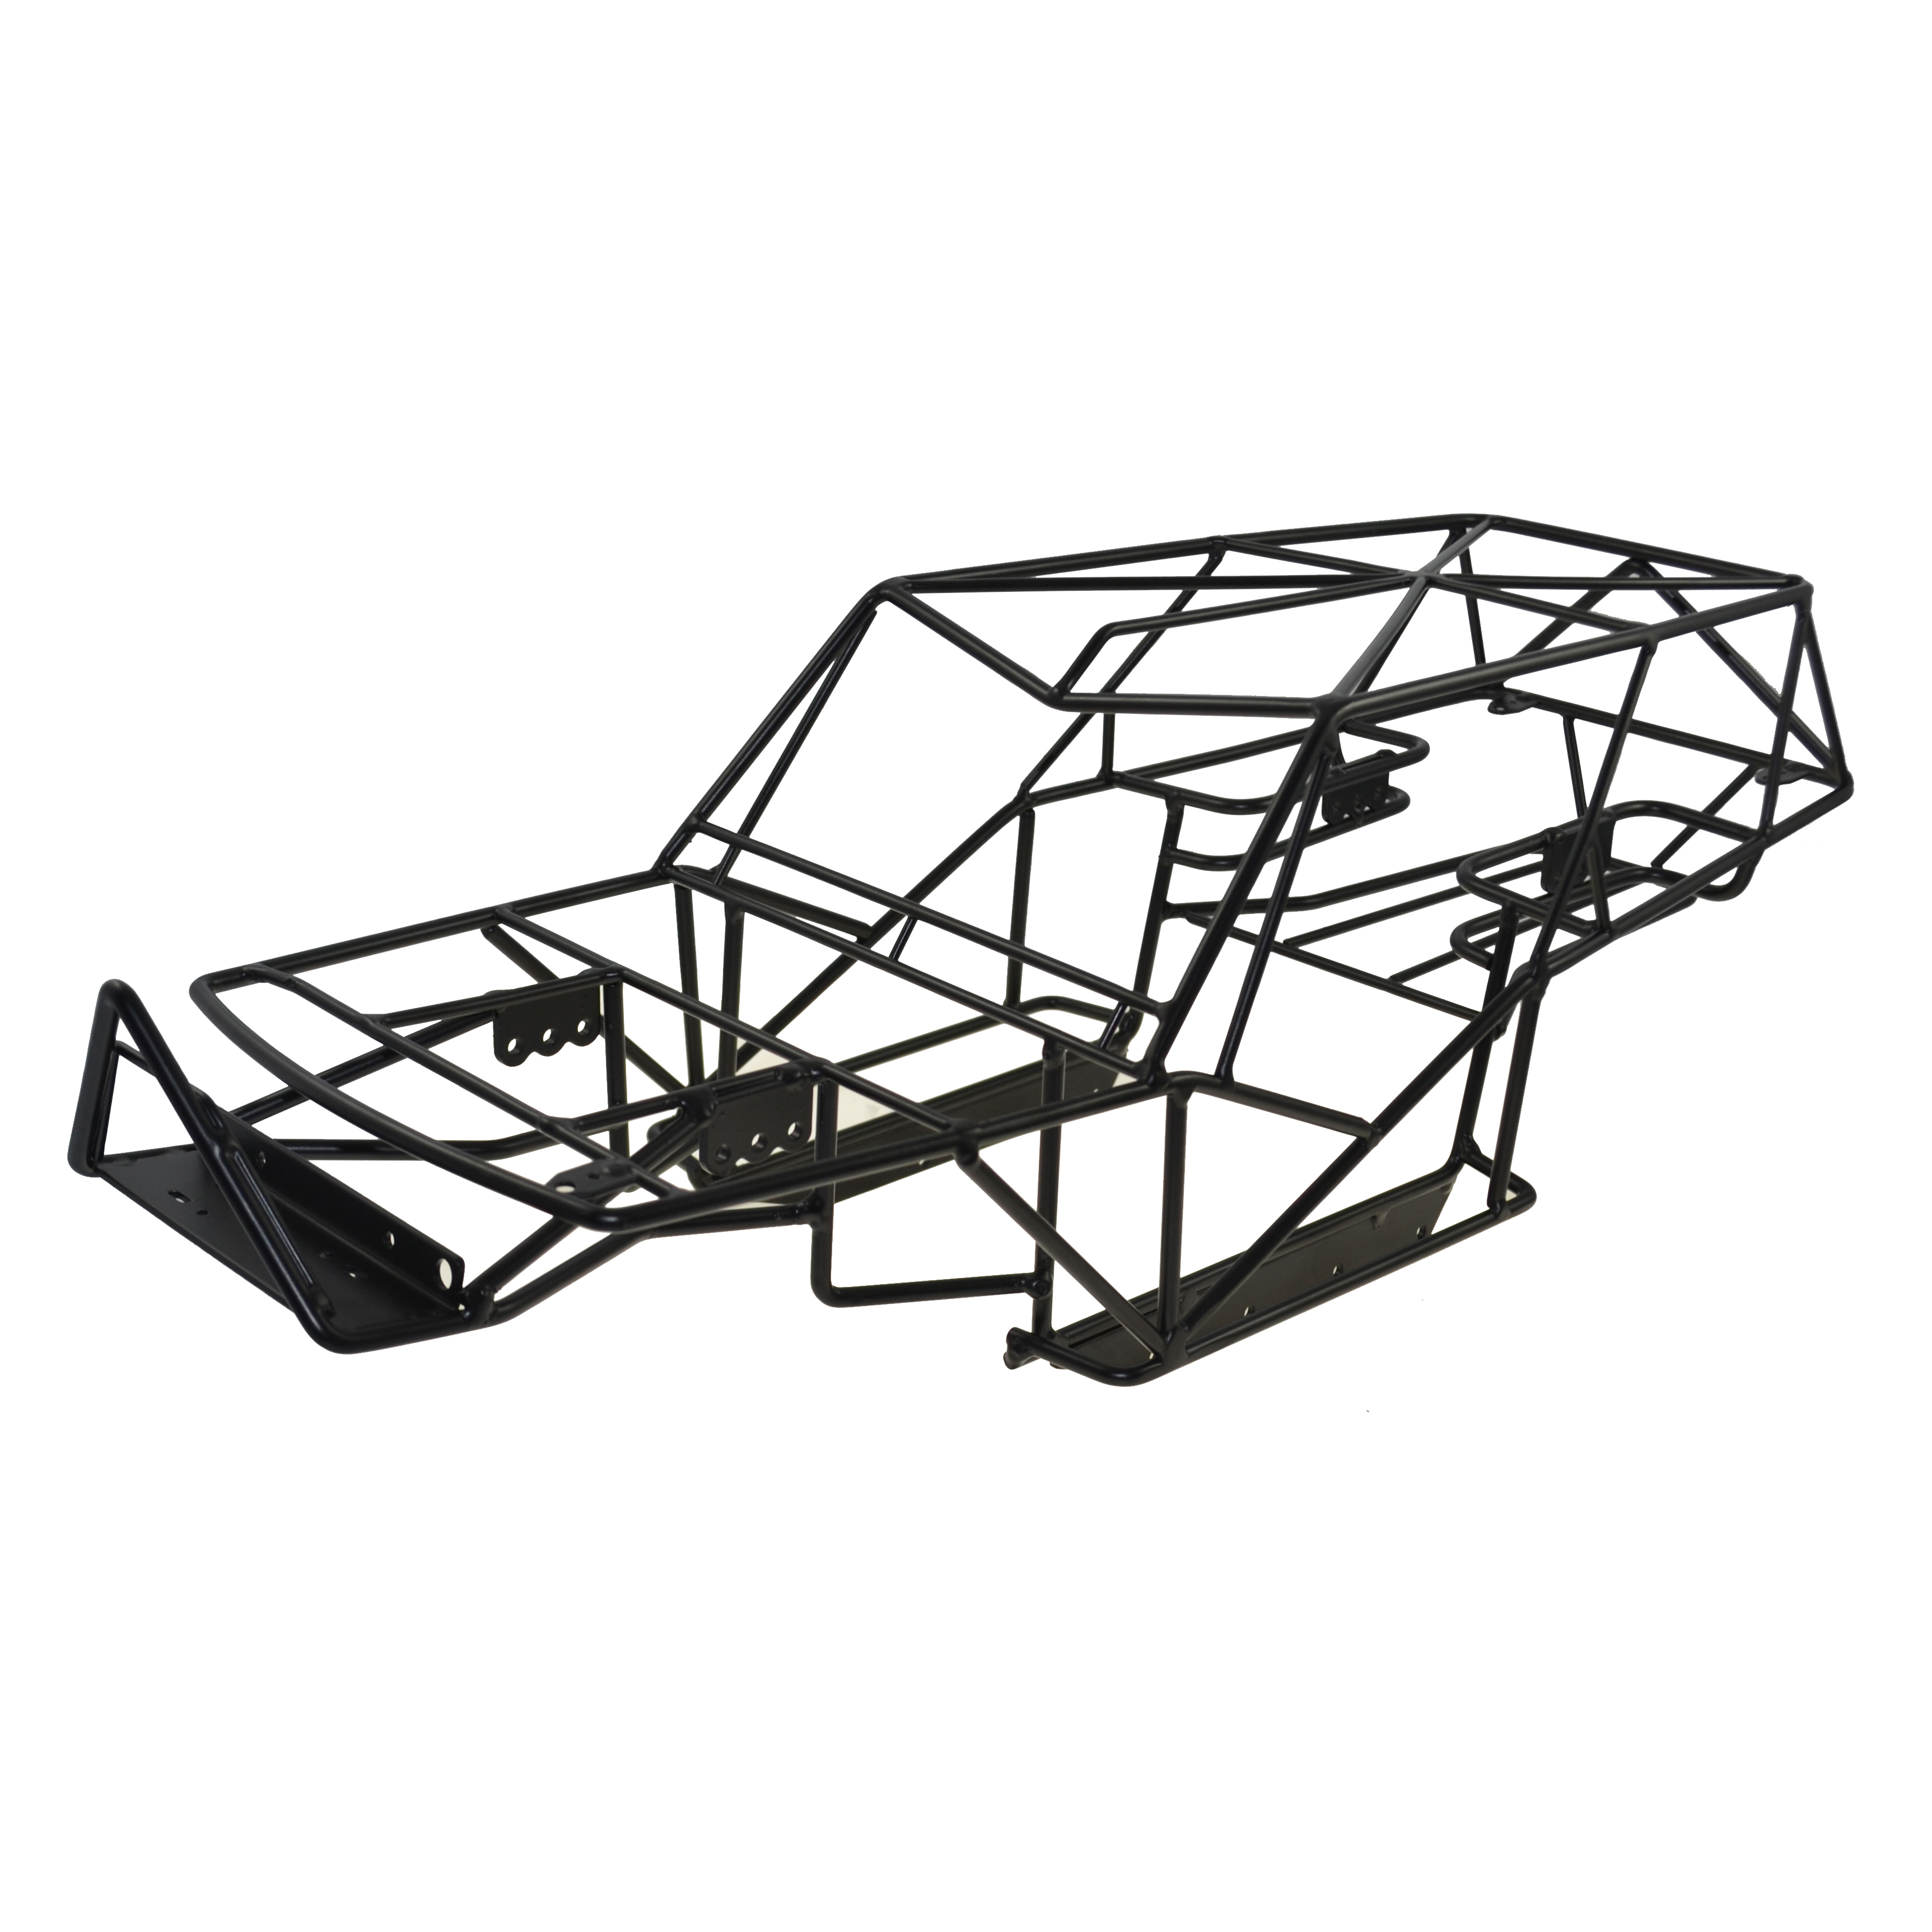 RCAIDONG 1/10 Rc Crawler Metal Roll Cage Tube Frame Chassis With roof Rack Set for 1/10 Axial Wraith partol black car roof rack cross bars roof luggage carrier cargo boxes bike rack 45kg 100lbs for honda pilot 2013 2014 2015